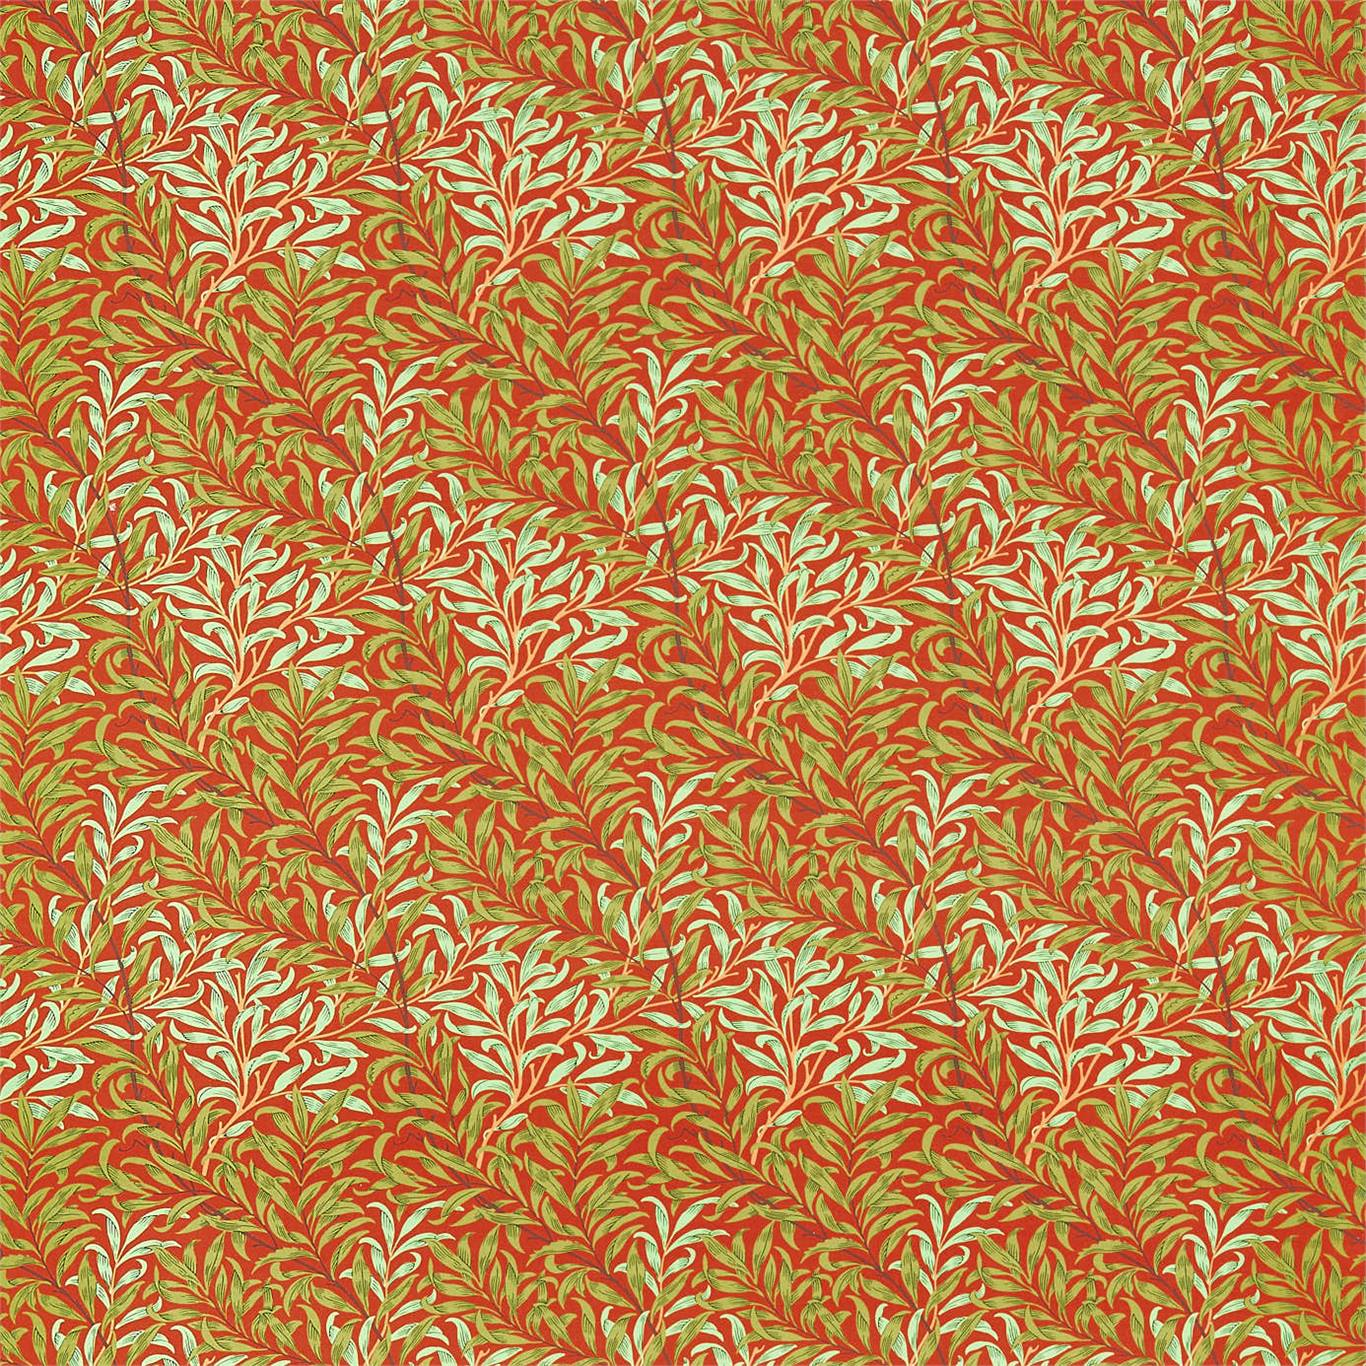 DBPF226843 Collection - Queens Square Fabric